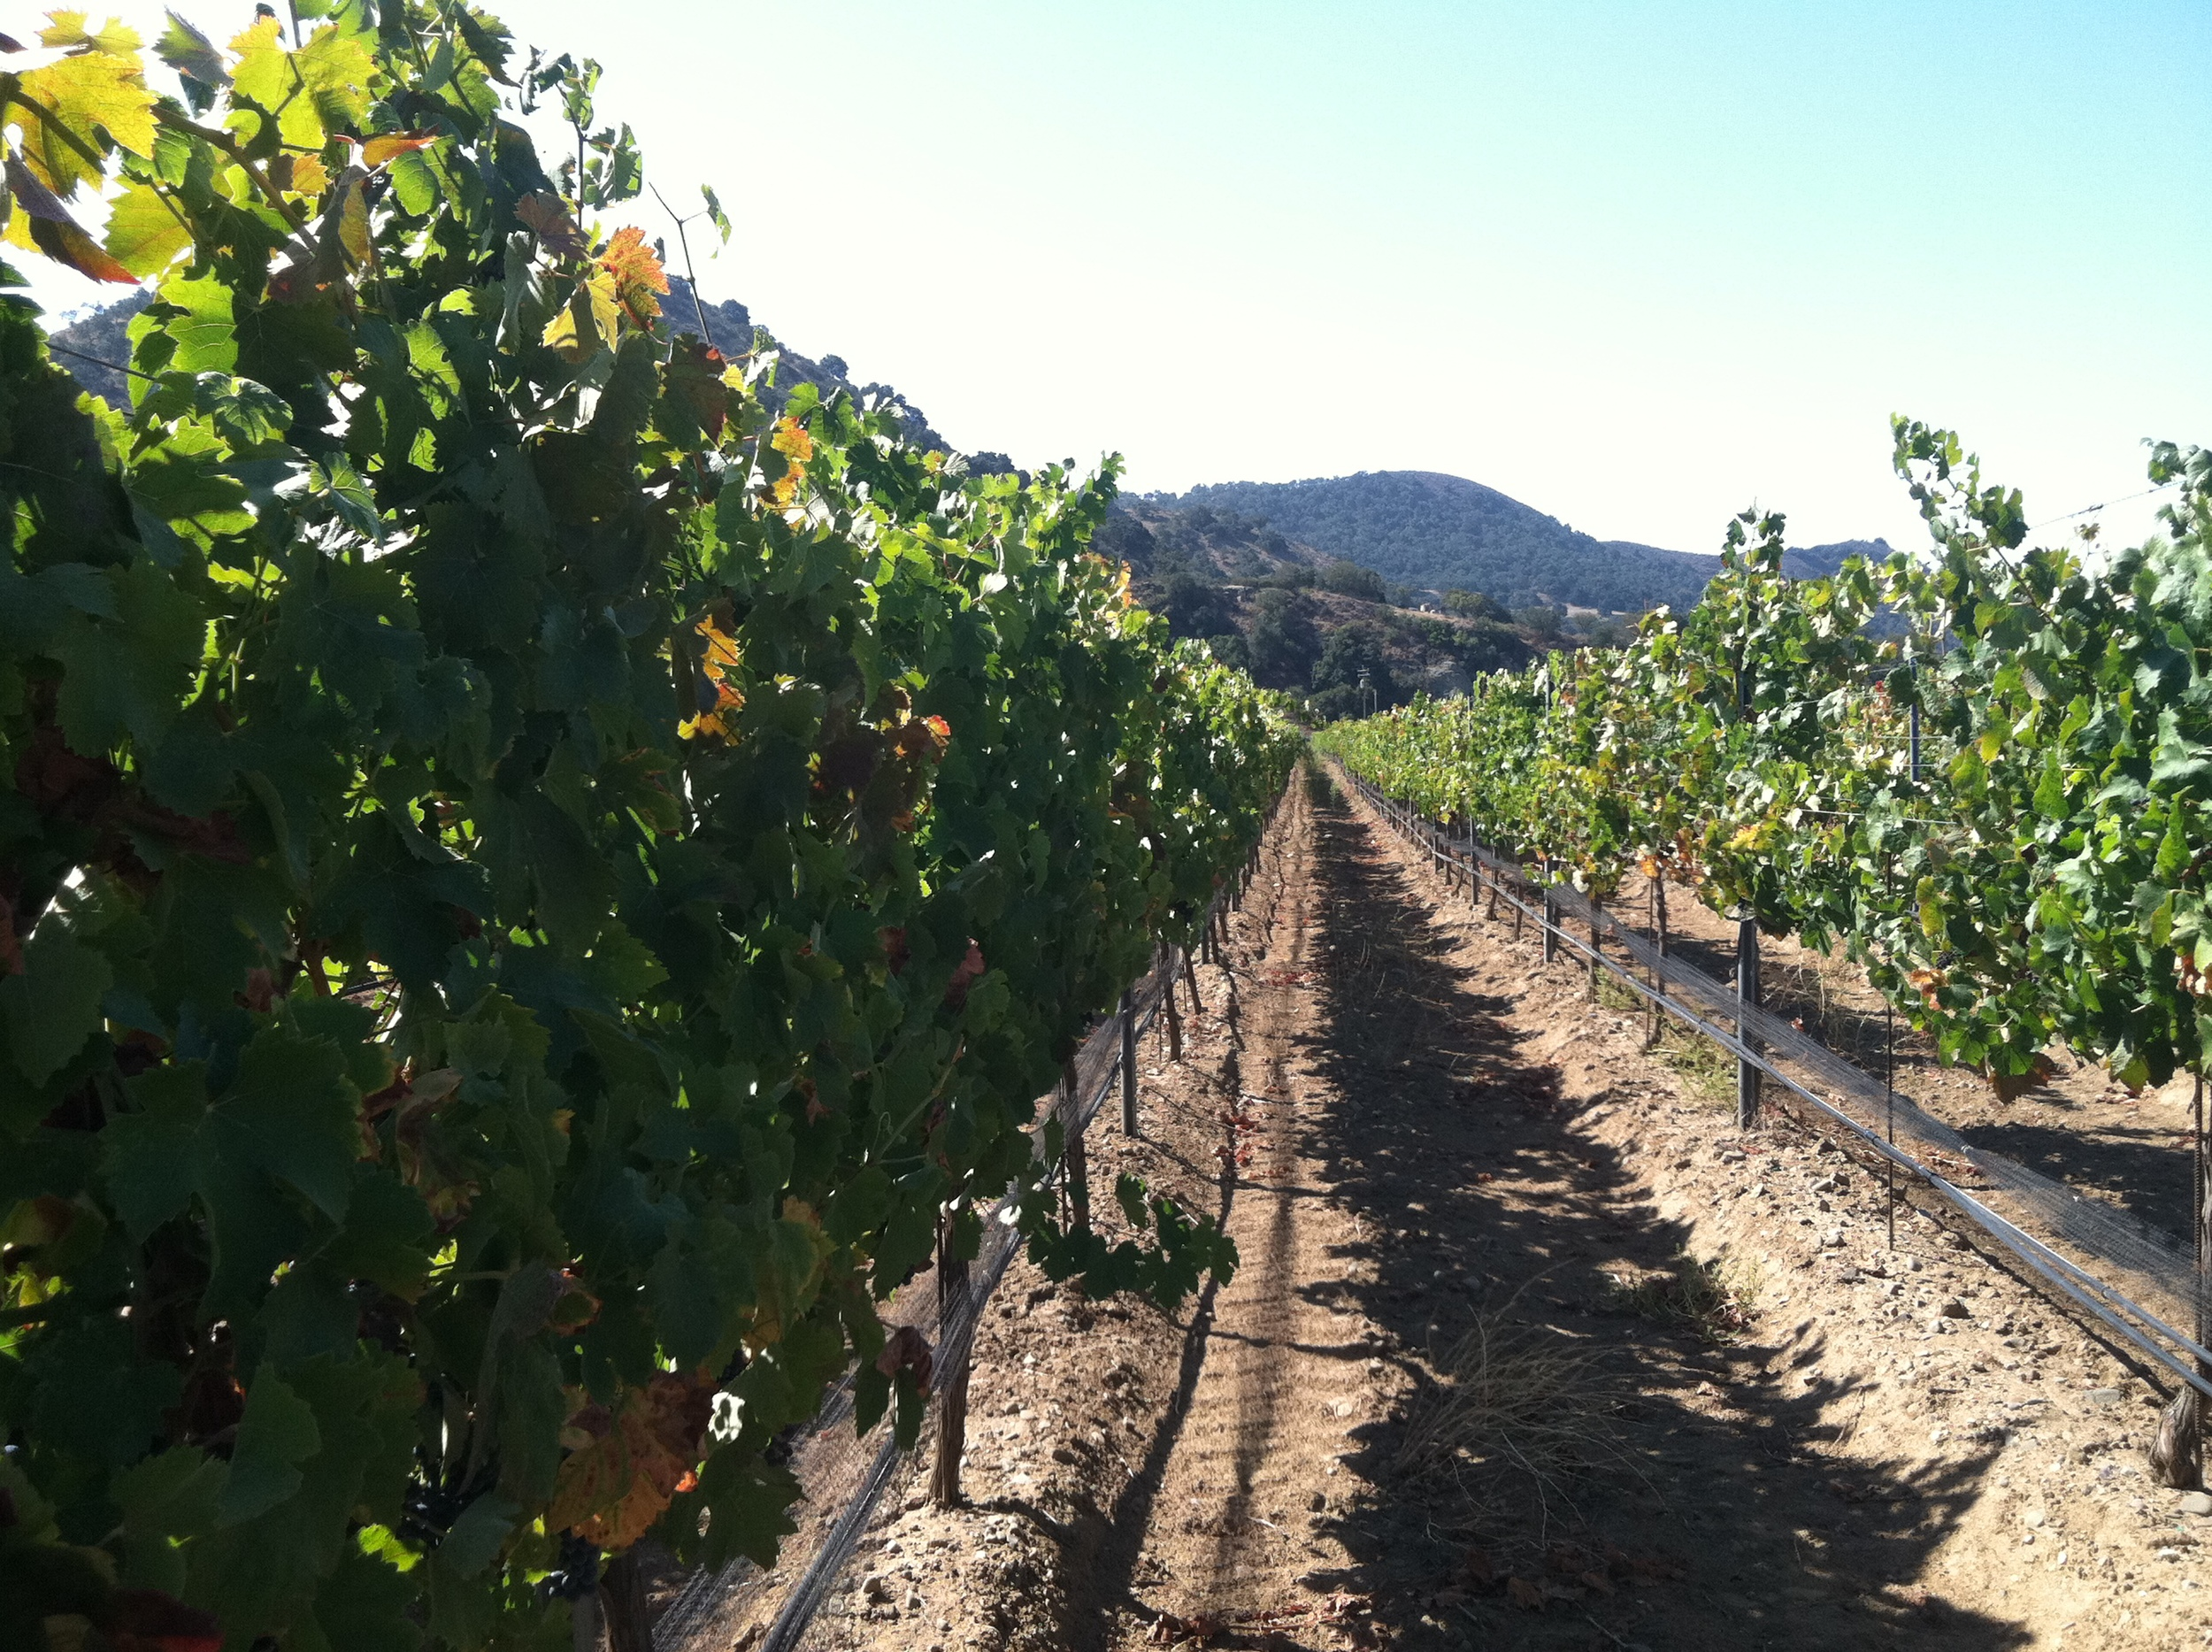 Syrah vines with mountain behind